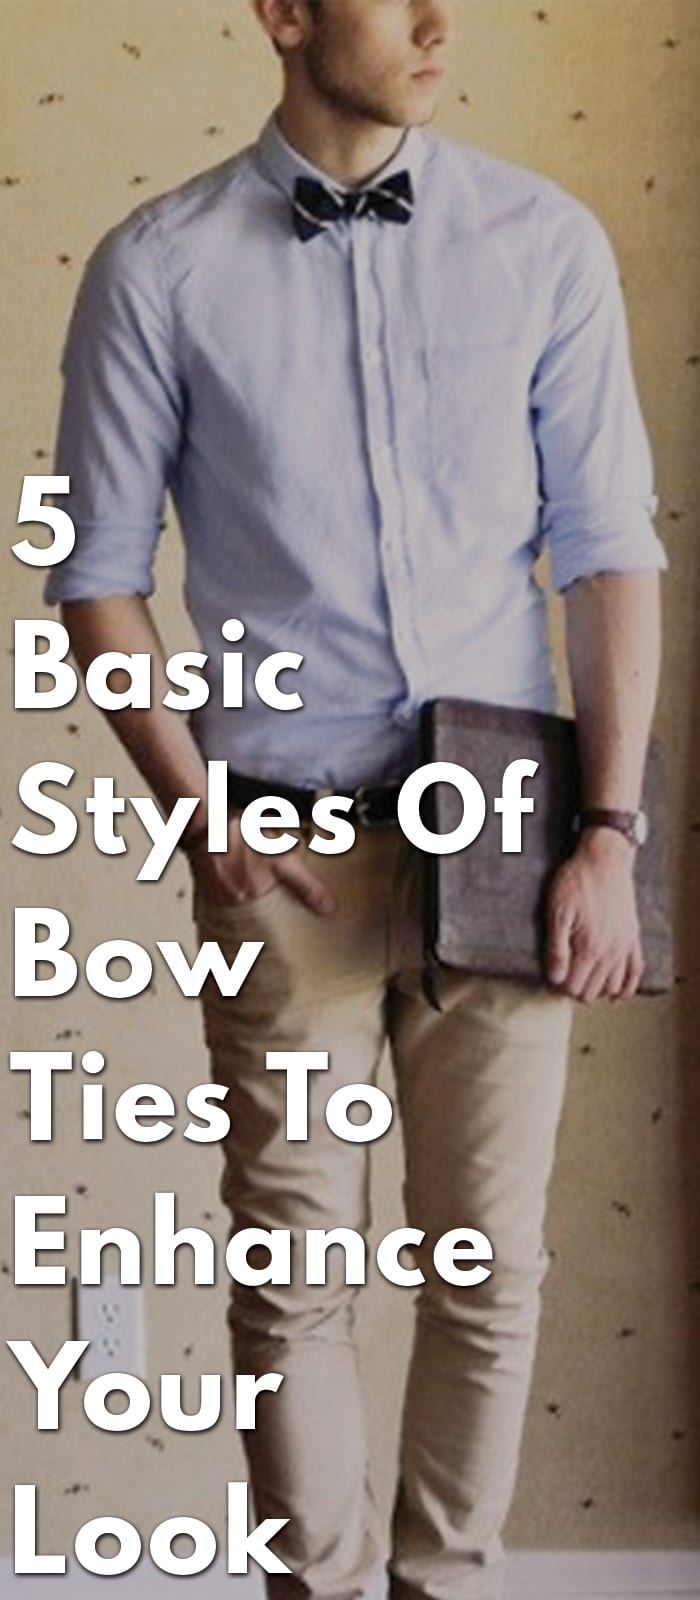 5-Basic-Styles-Of-Bow-Ties-To-Enhance-Your-Look